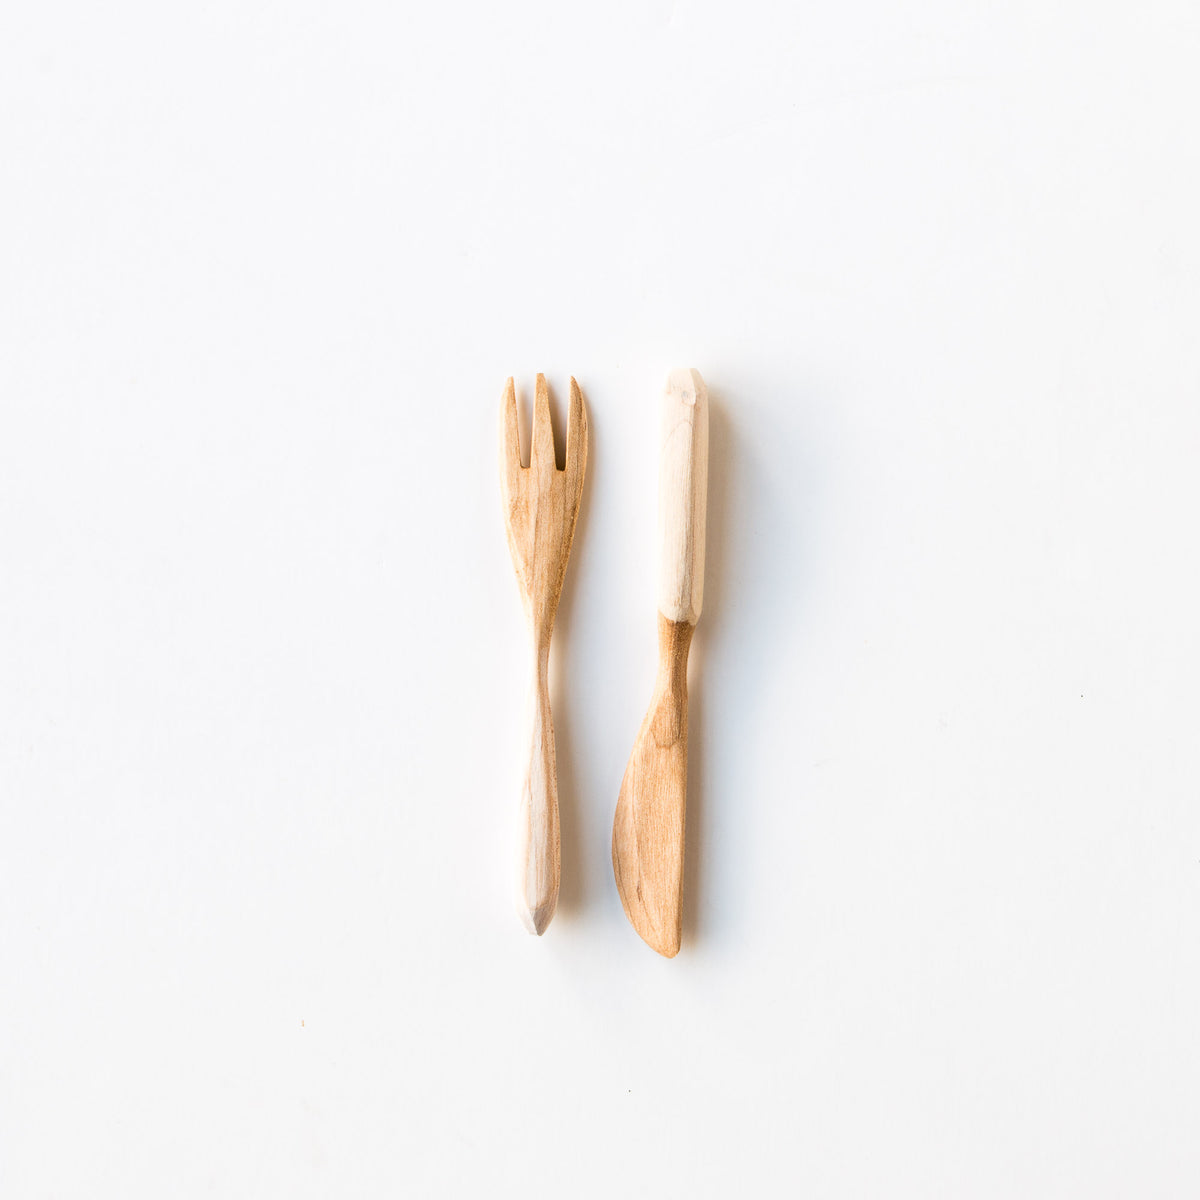 Wooden Fork and Knife Set - Handmade in Reclaimed Maple Wood - Sold by Chic & Basta